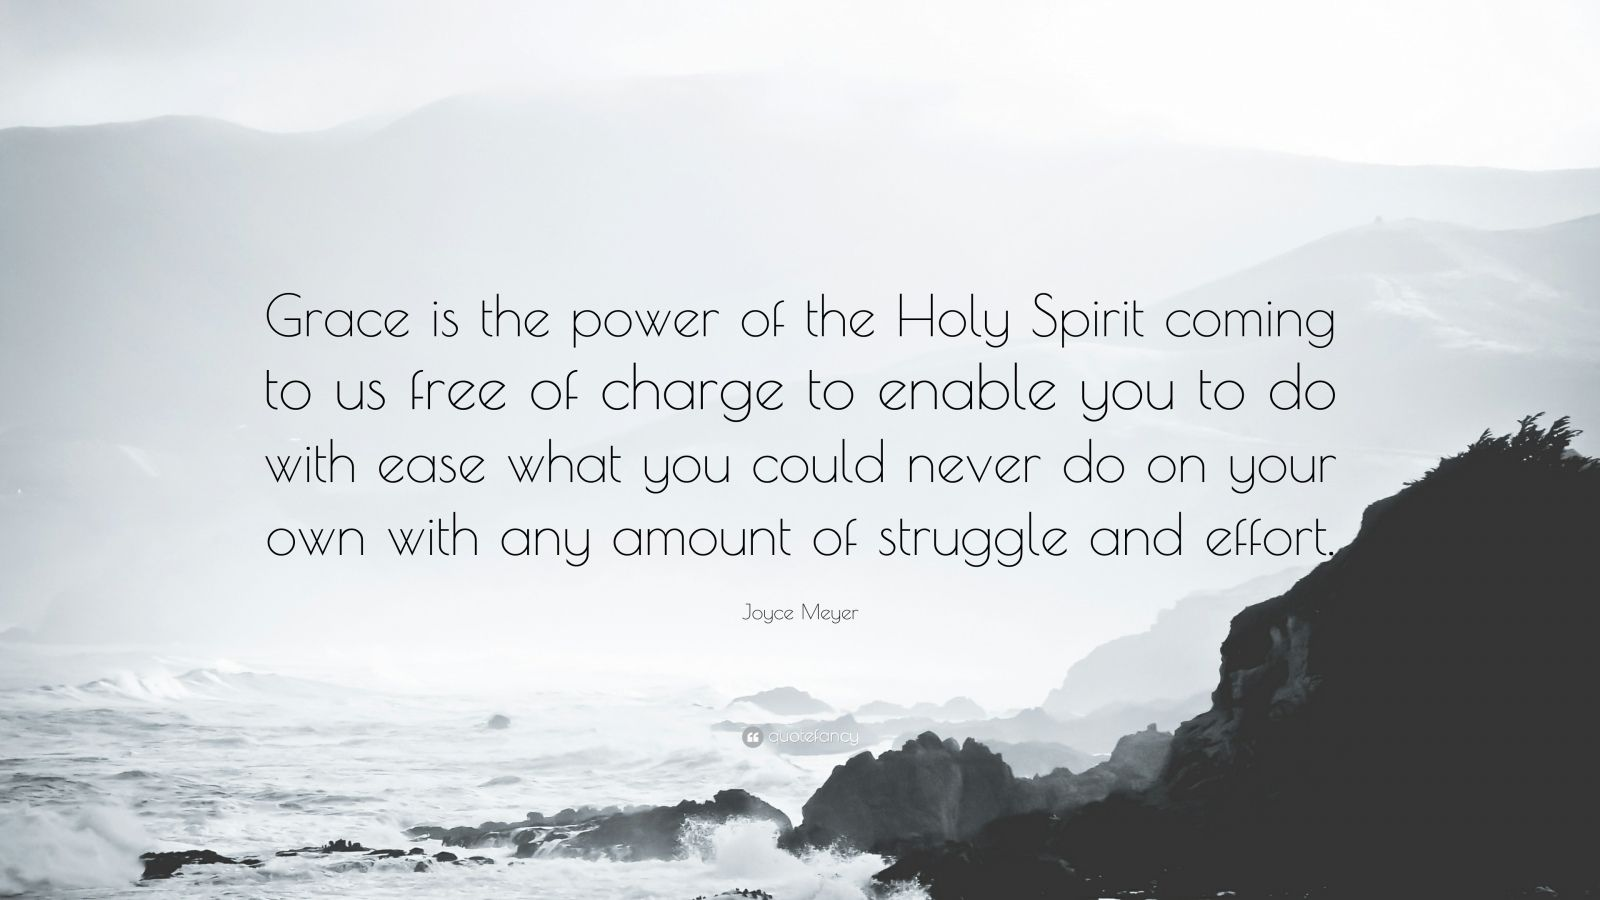 """Joyce Meyer Quote: """"Grace is the power of the Holy Spirit coming to us free of charge to enable you to do with ease what you could never do on your own with any amount of struggle and effort."""""""